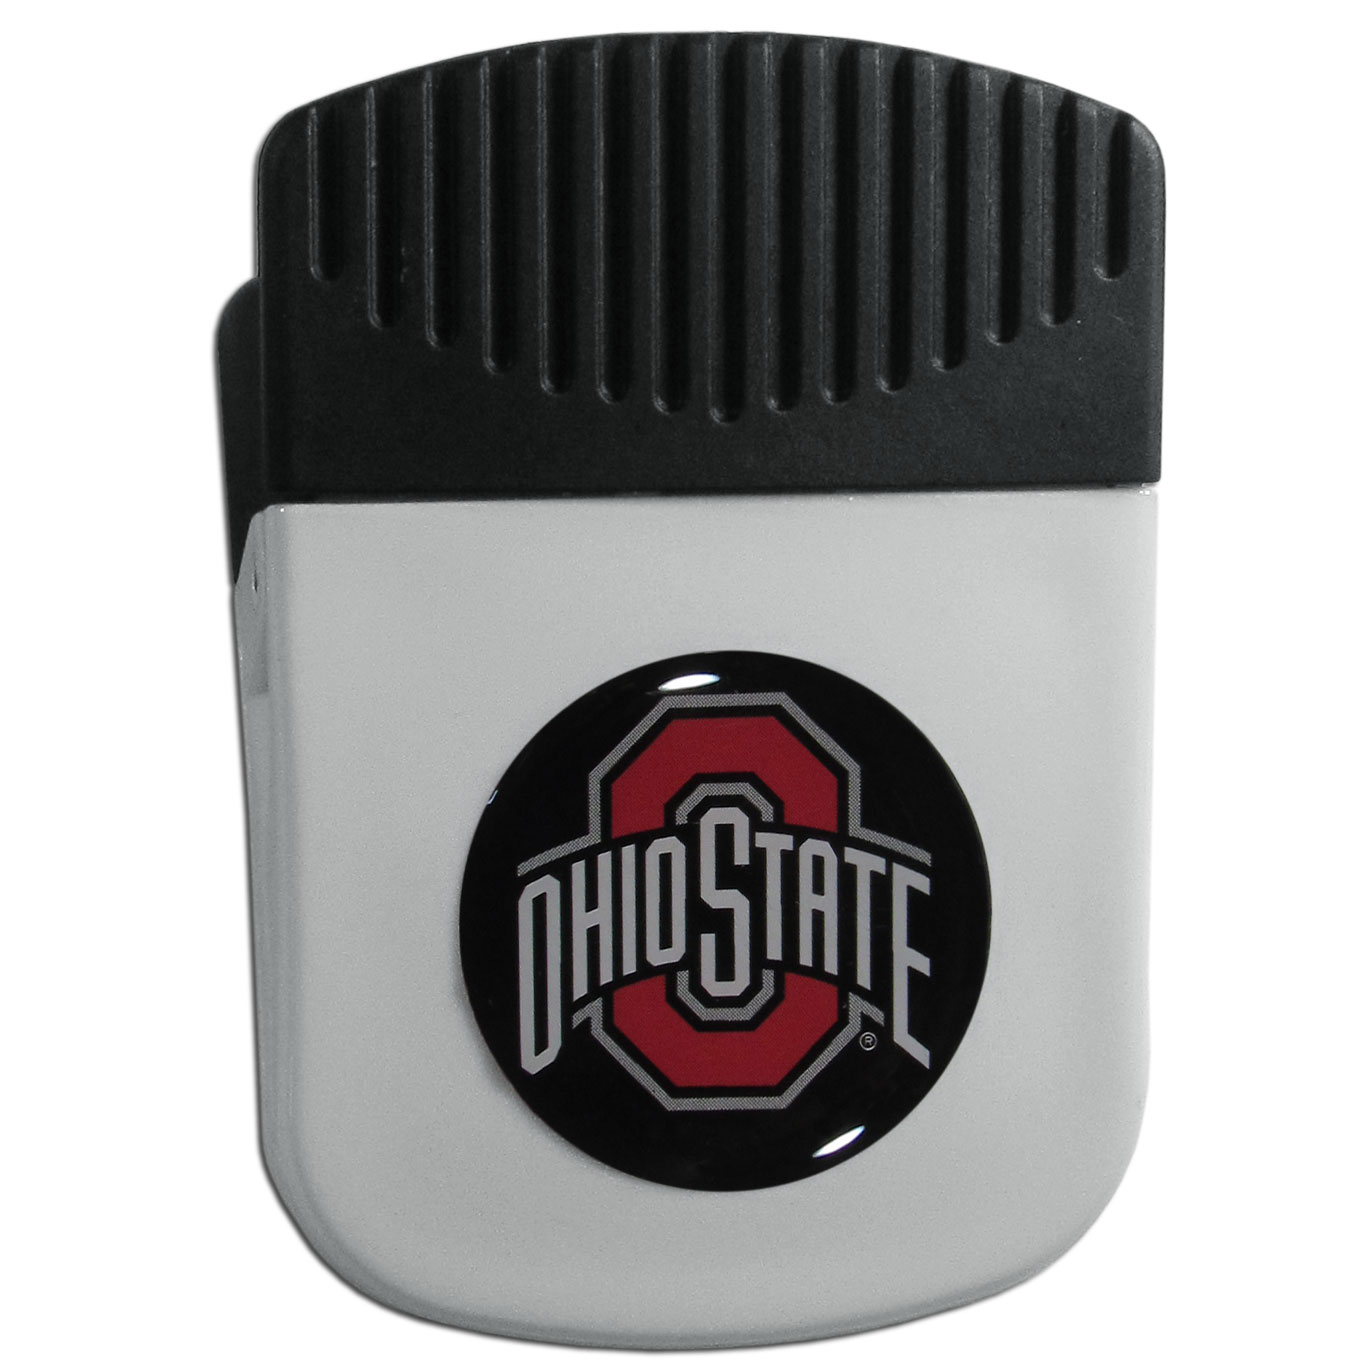 Ohio St. Buckeyes Chip Clip Magnet - Use this attractive clip magnet to hold memos, photos or appointment cards on the fridge or take it down keep use it to clip bags shut. The magnet features a domed Ohio St. Buckeyes logo.